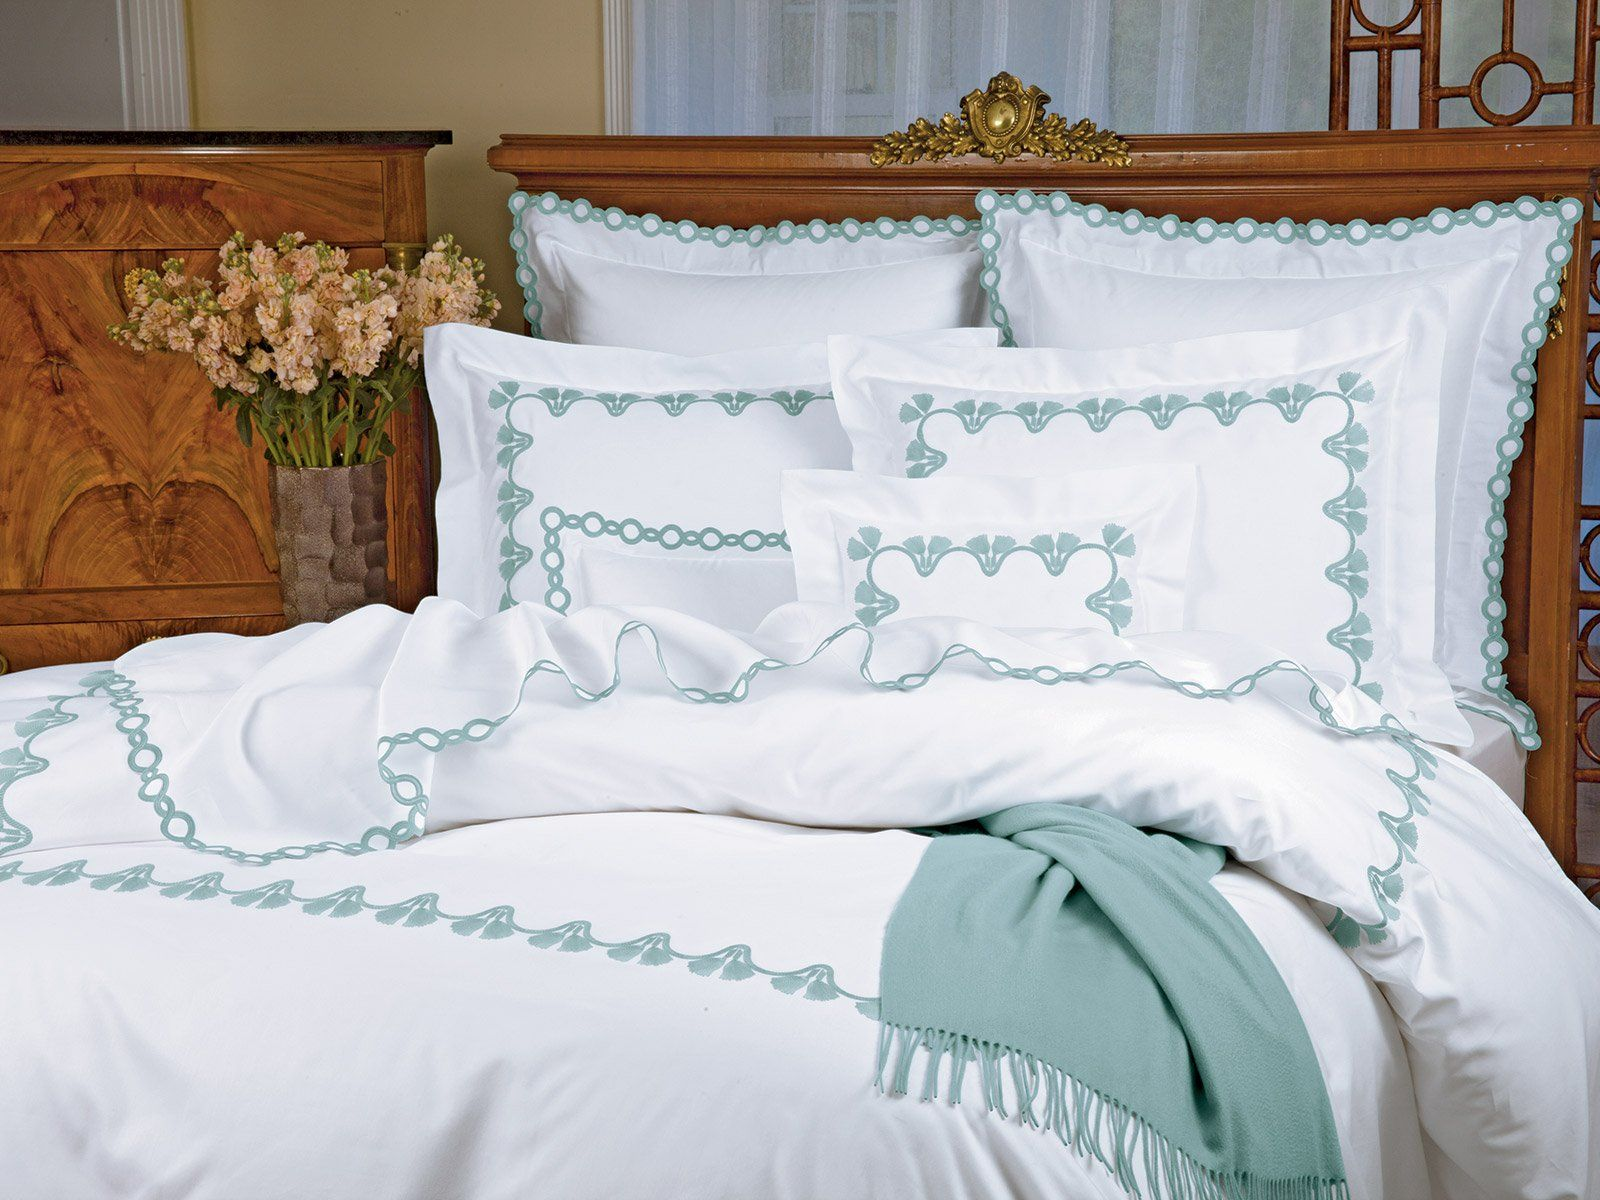 Tassels Luxury Bedding Italian Bed Linens Schweitzer